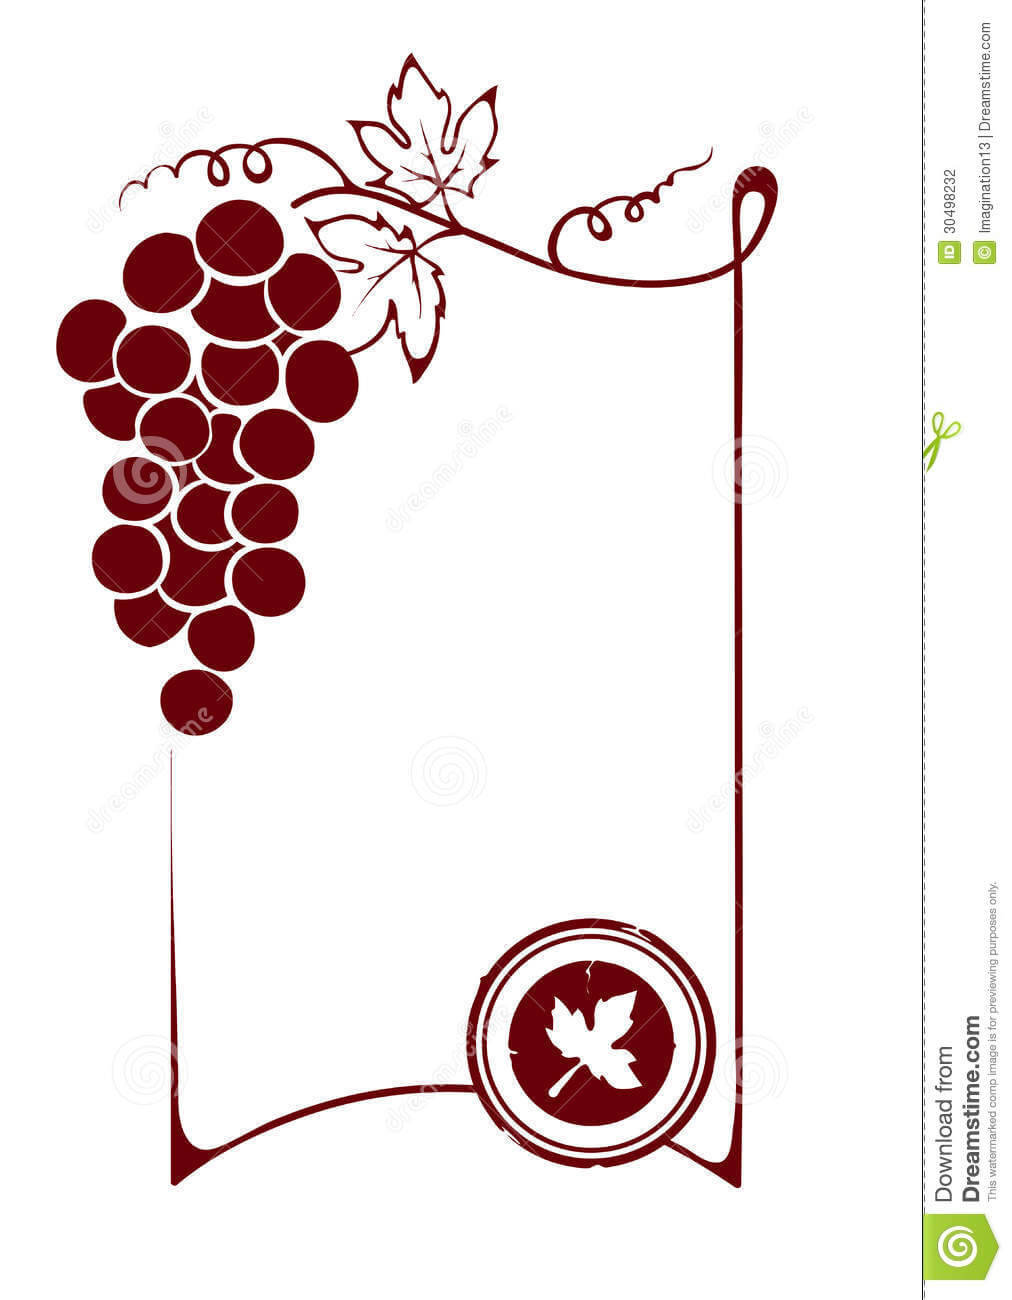 The Blank Wine Label Stock Vector. Illustration Of Decor Throughout Blank Wine Label Template